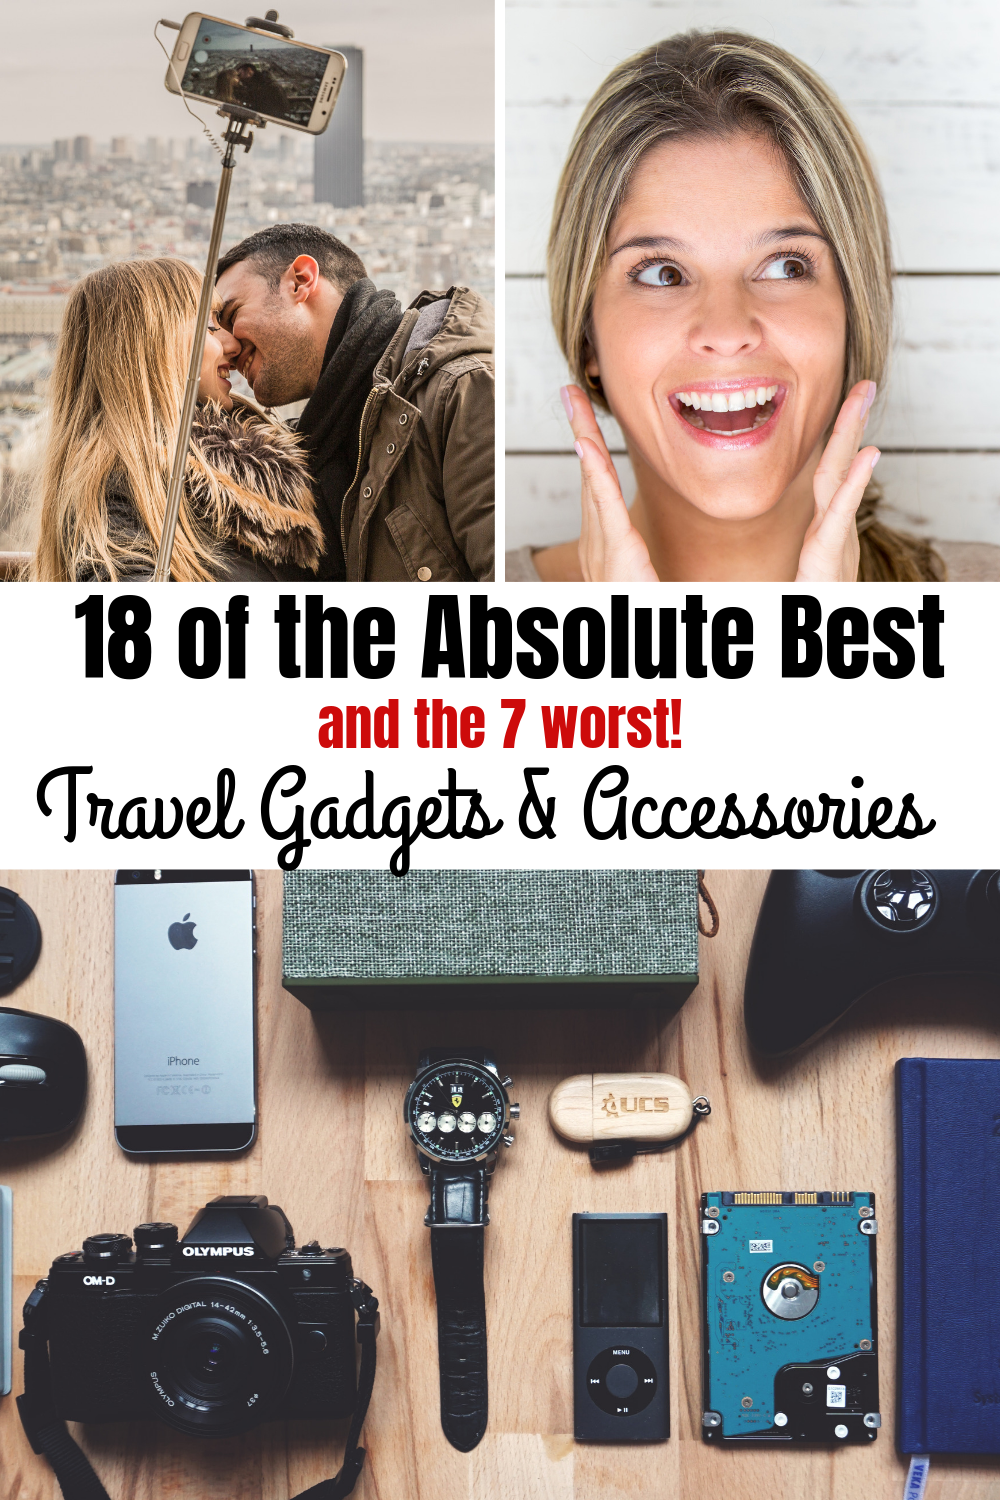 All of the best (and some of the worst!) travel gadgets, accessories and tech…